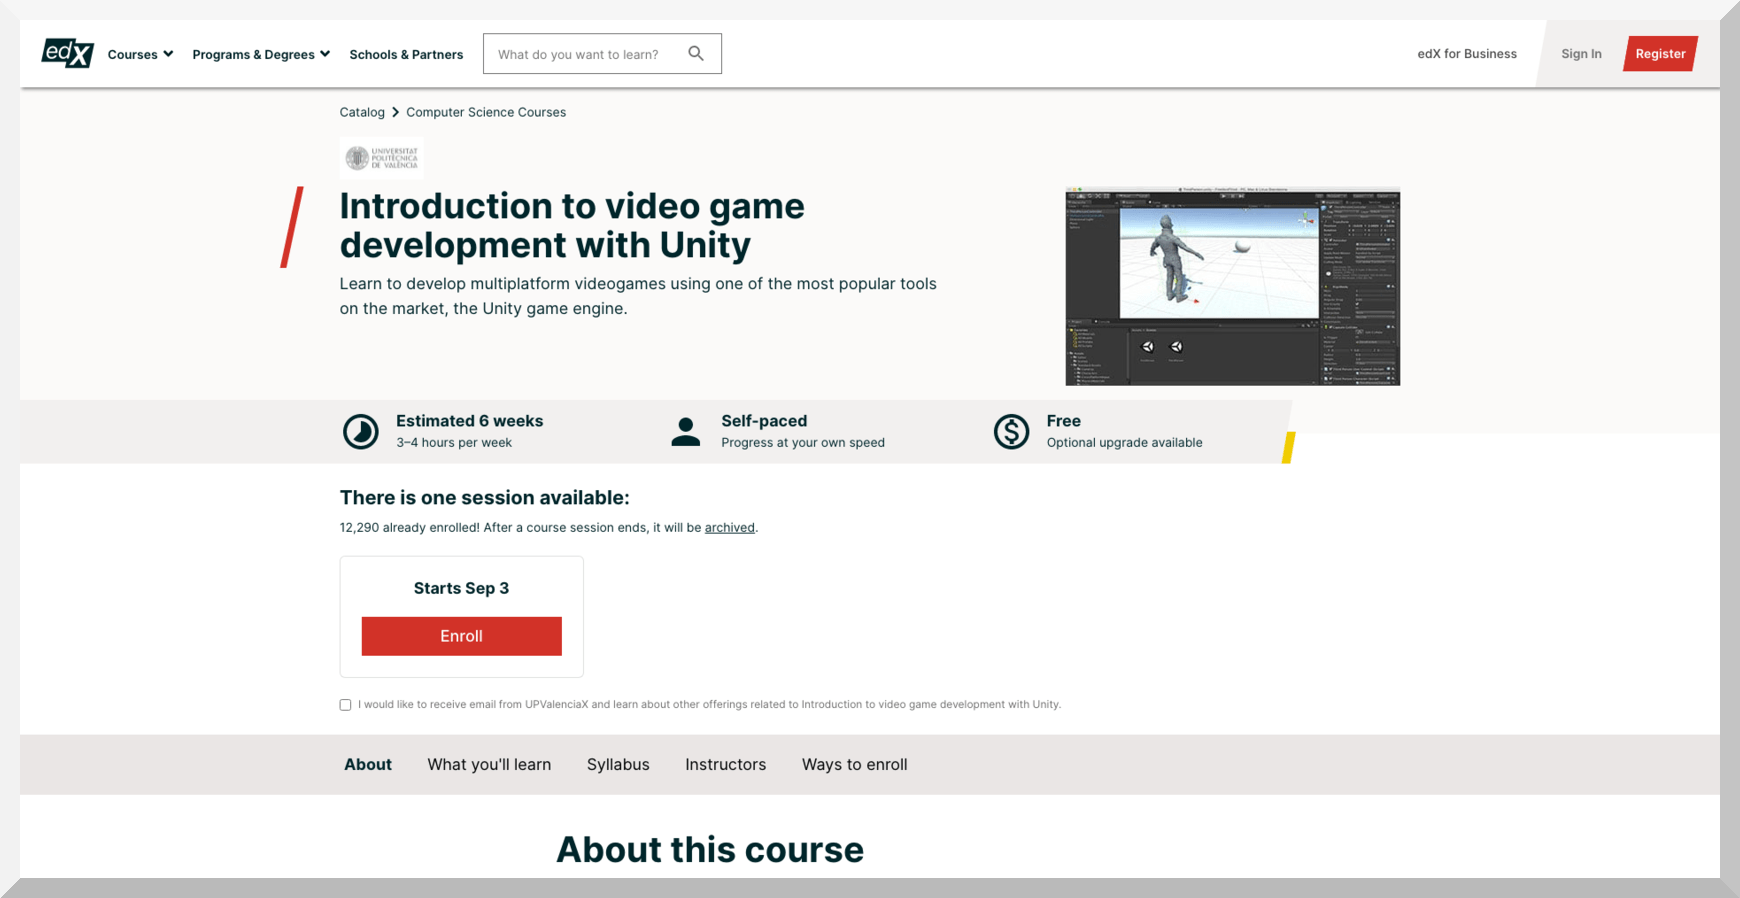 Introduction to Video Game Development with Unity – edX